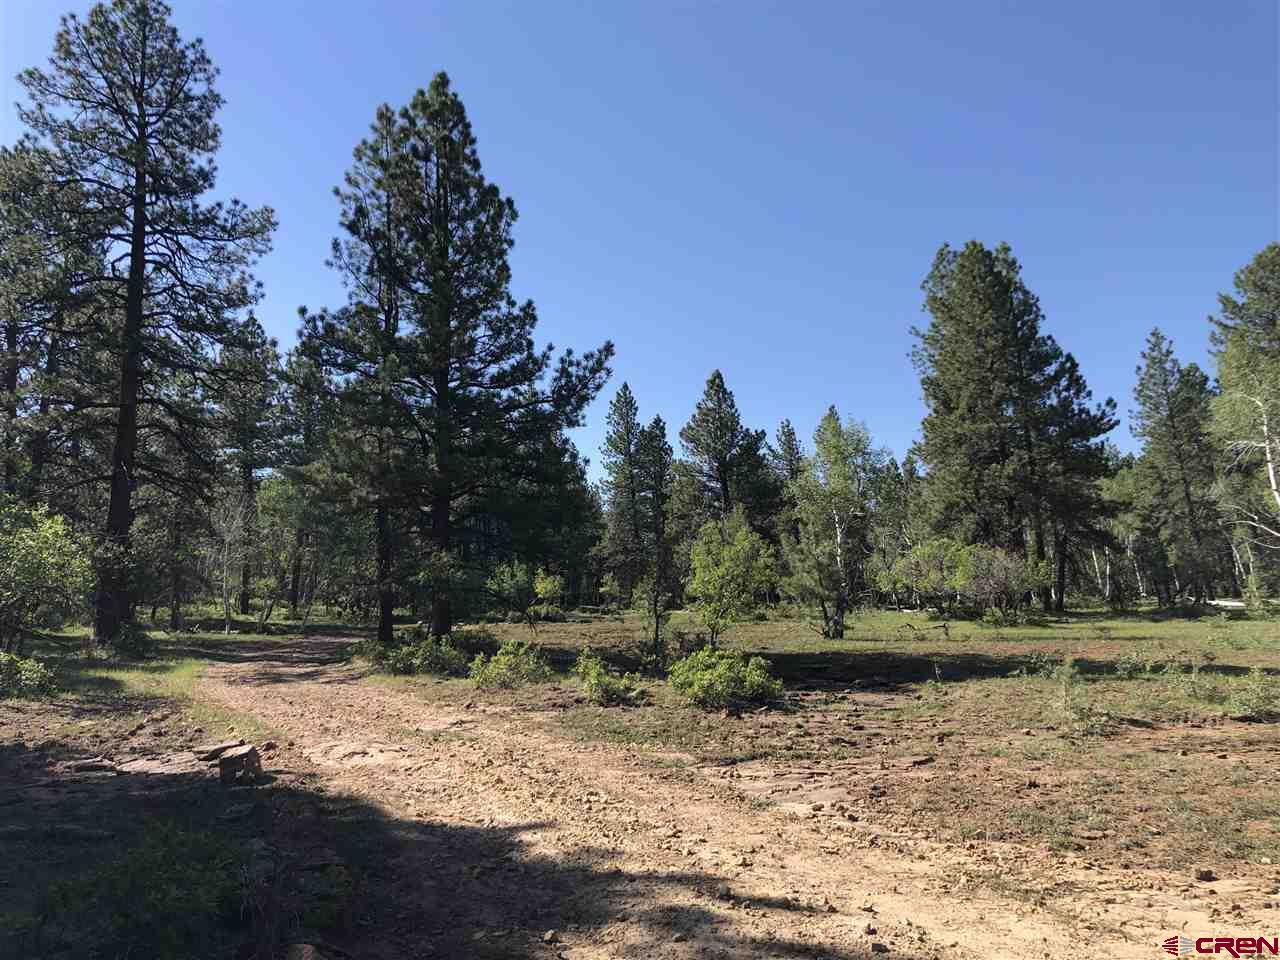 MLS# 770849 - 38286 Road N 37.6933124427187, Dolores, CO 81323